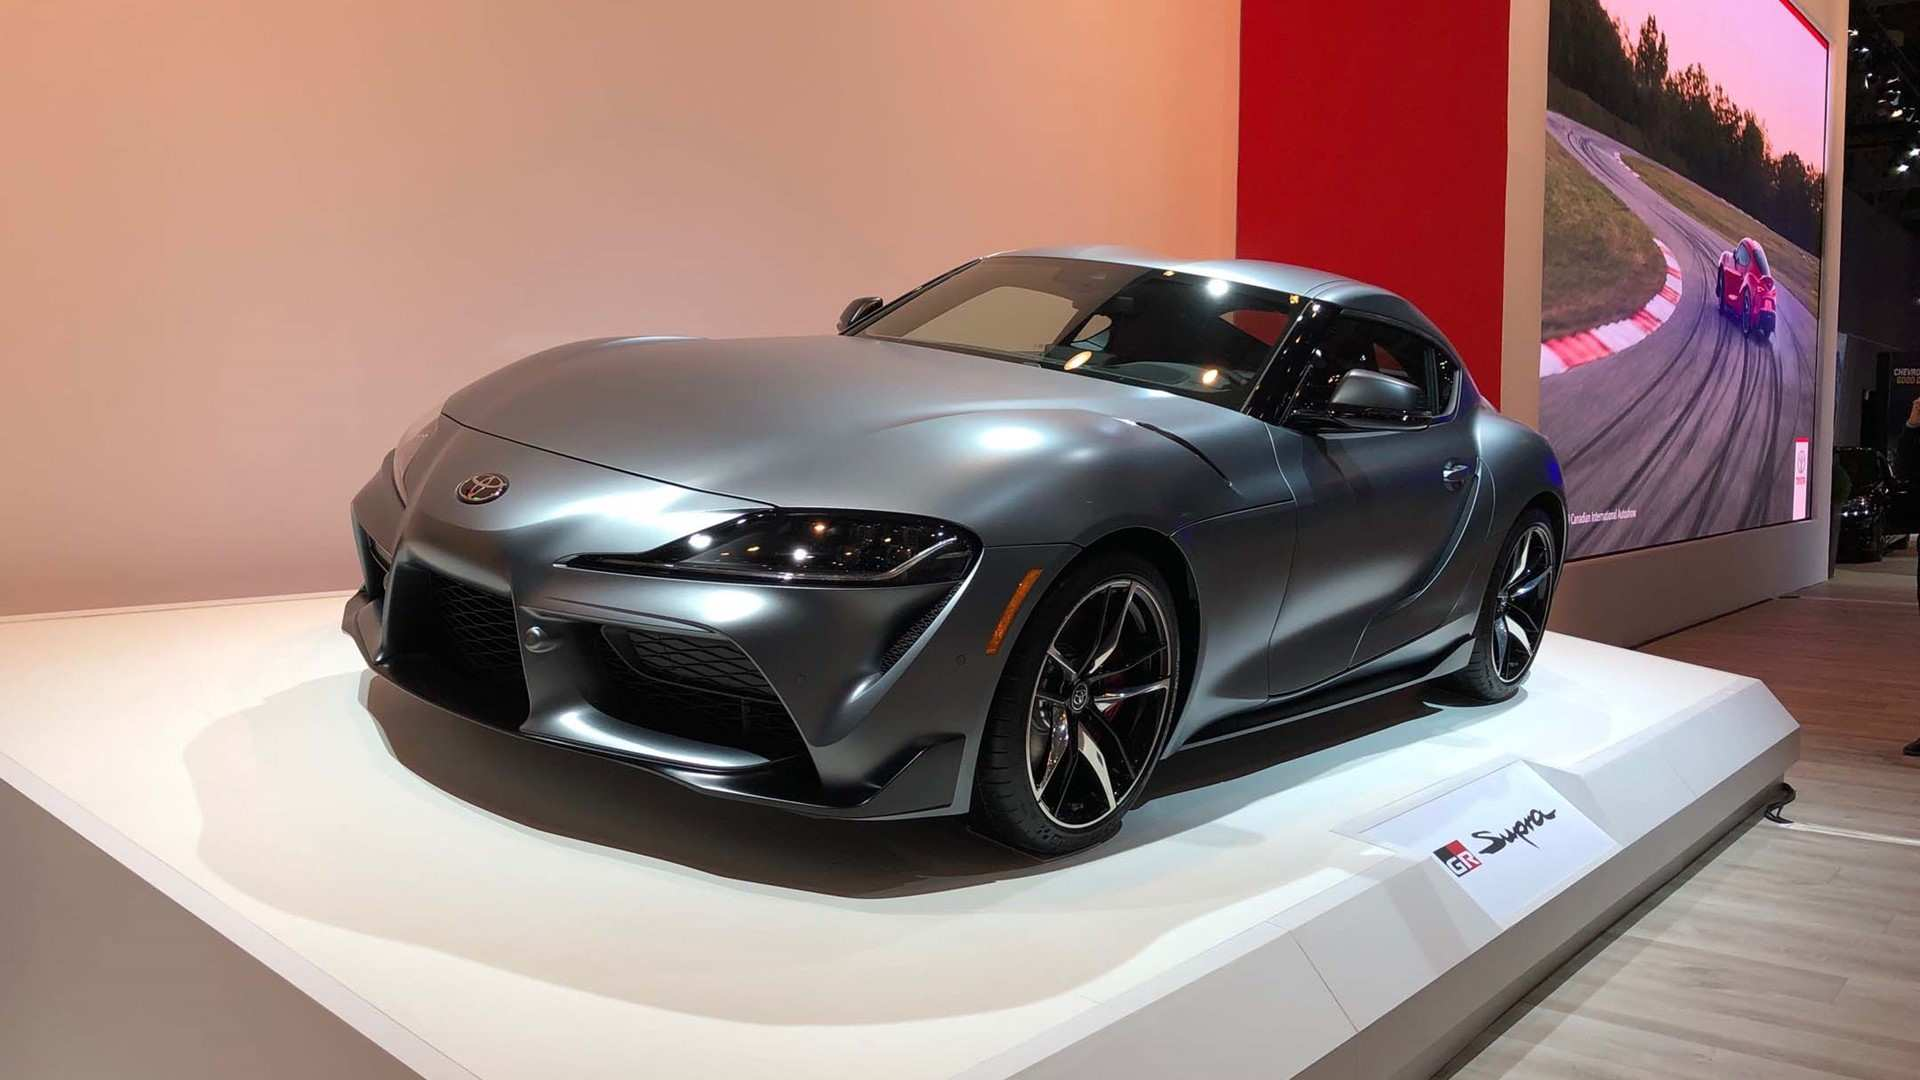 92 Best Review Toyota Gr Supra 2020 Picture with Toyota Gr Supra 2020